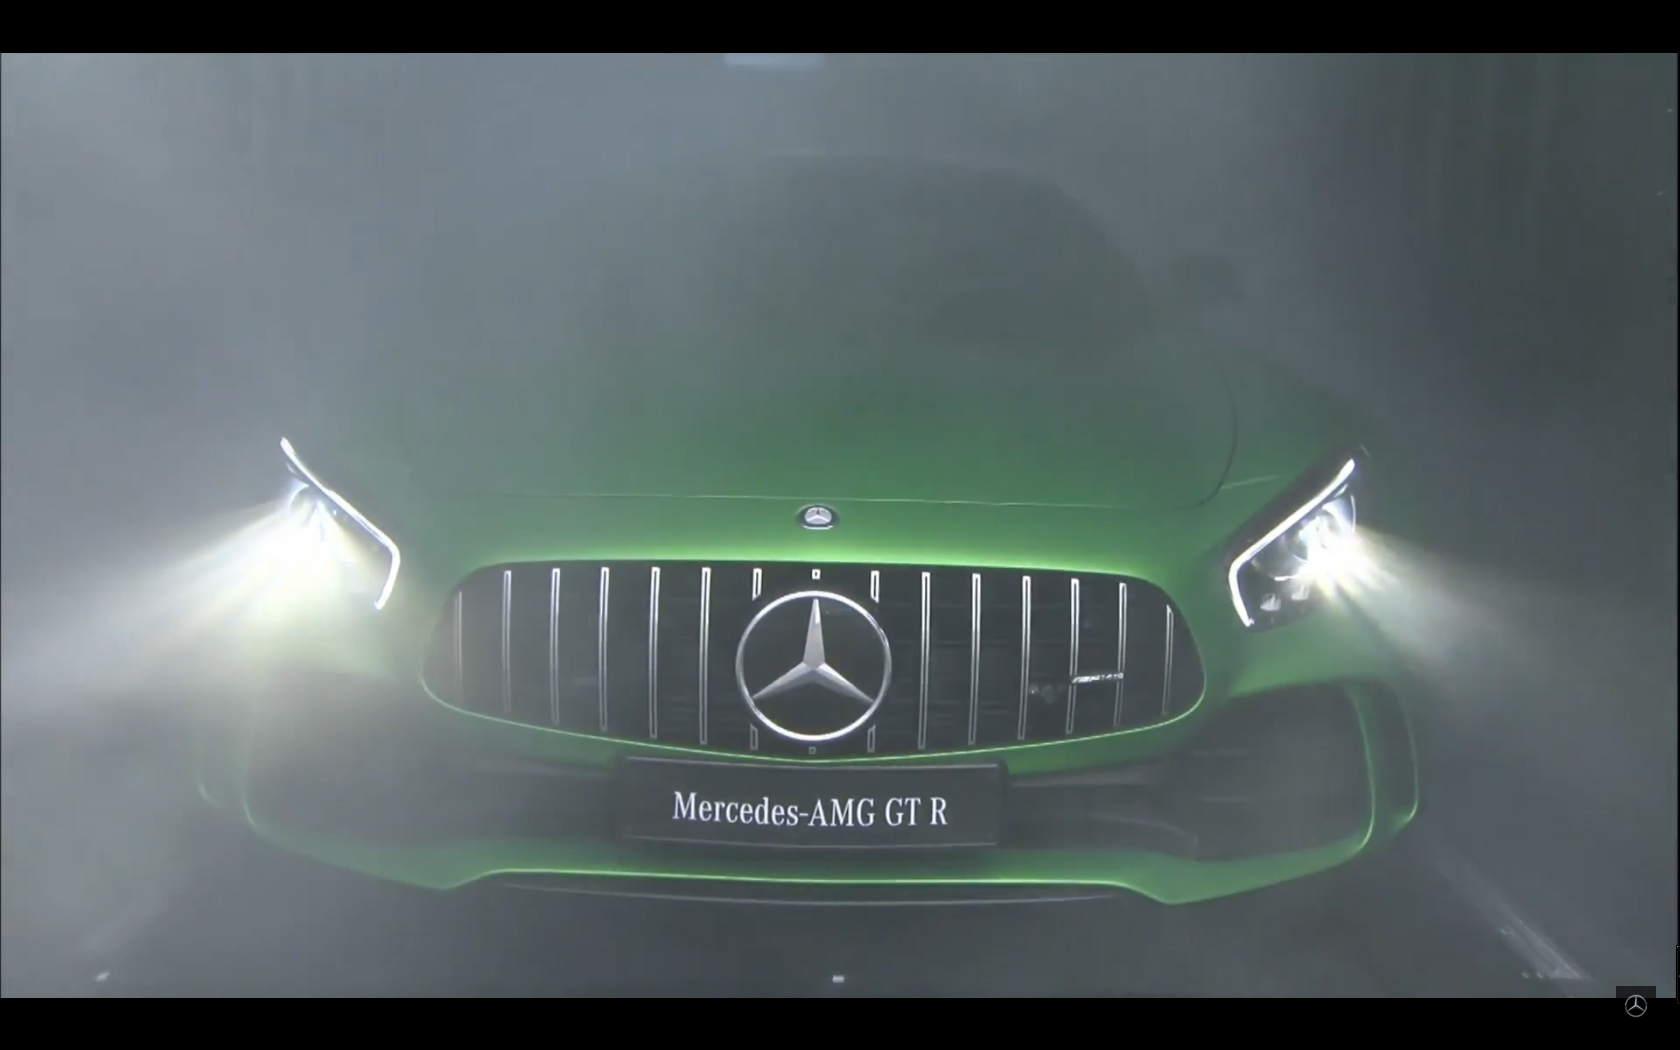 Mercedes-AMG GT R - 2016 - front reveal live